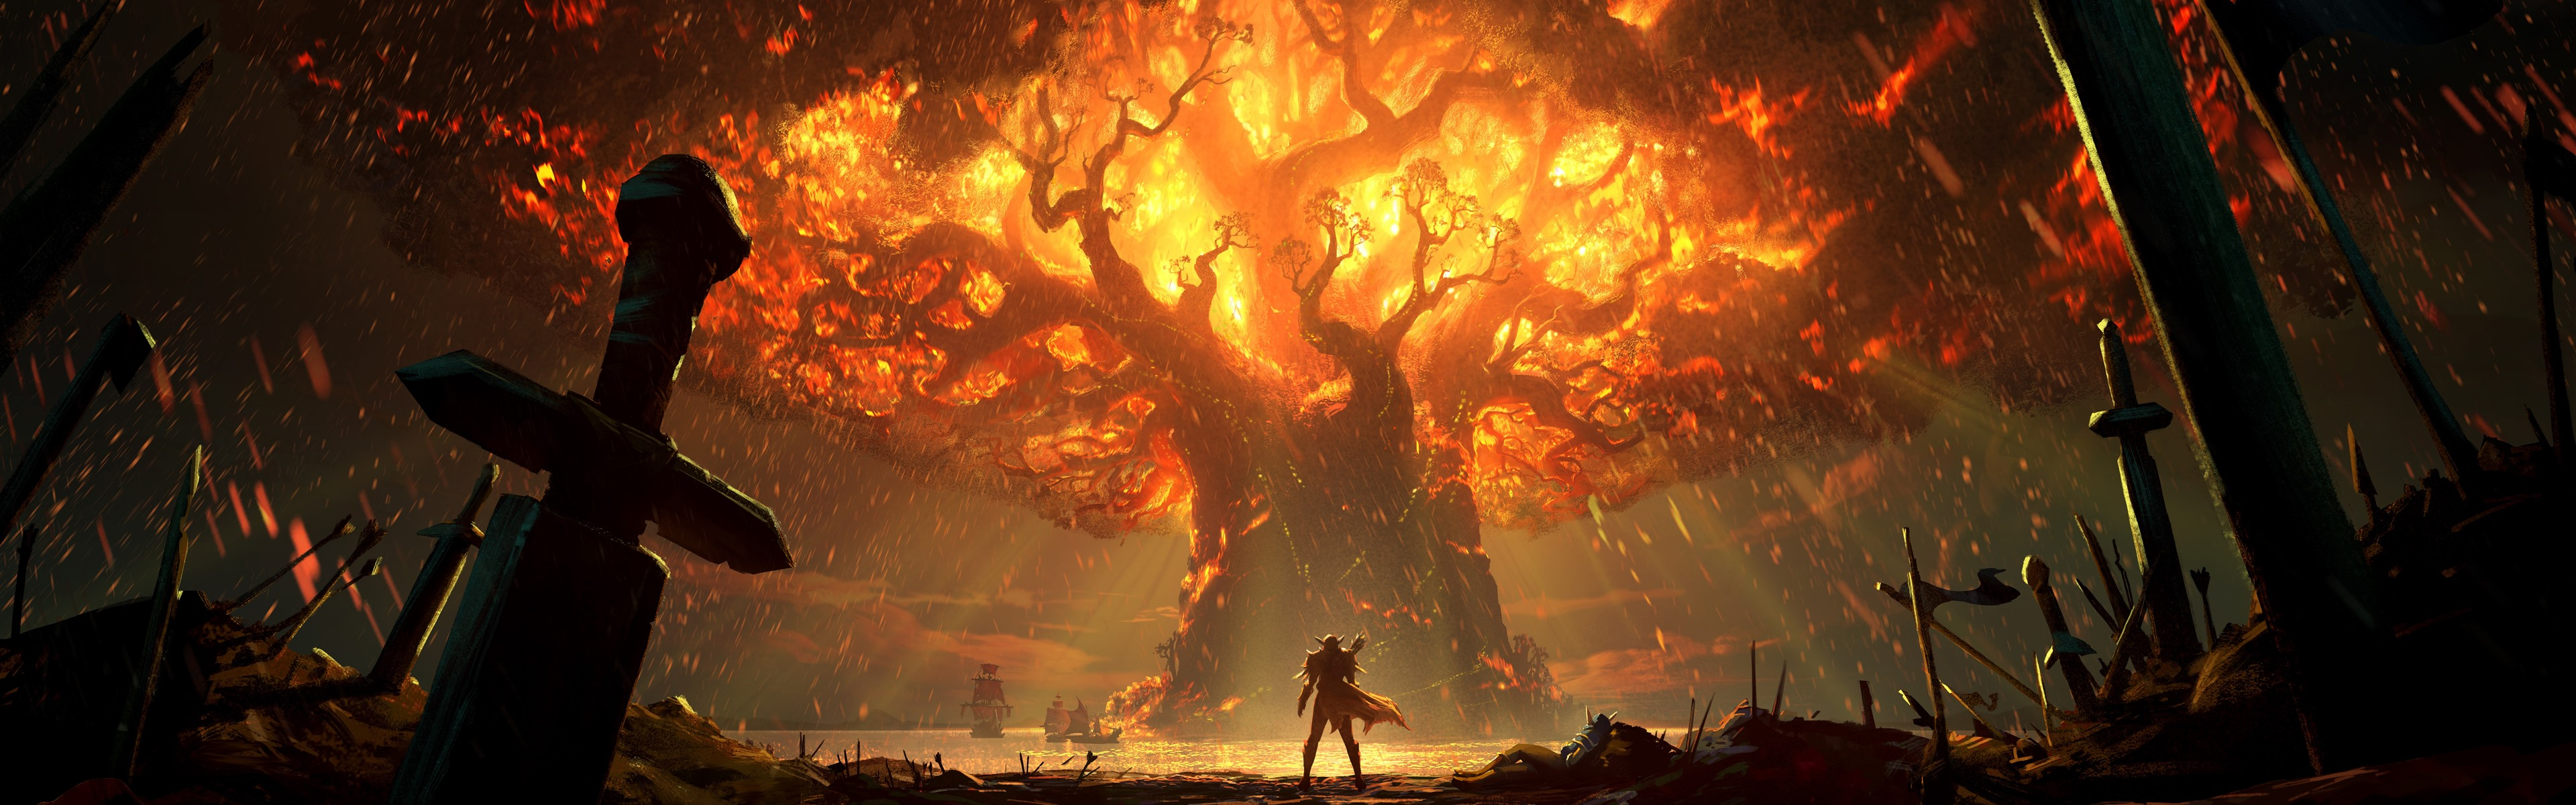 Wallpaper World Of Warcraft Battle For Azeroth Flame Tree